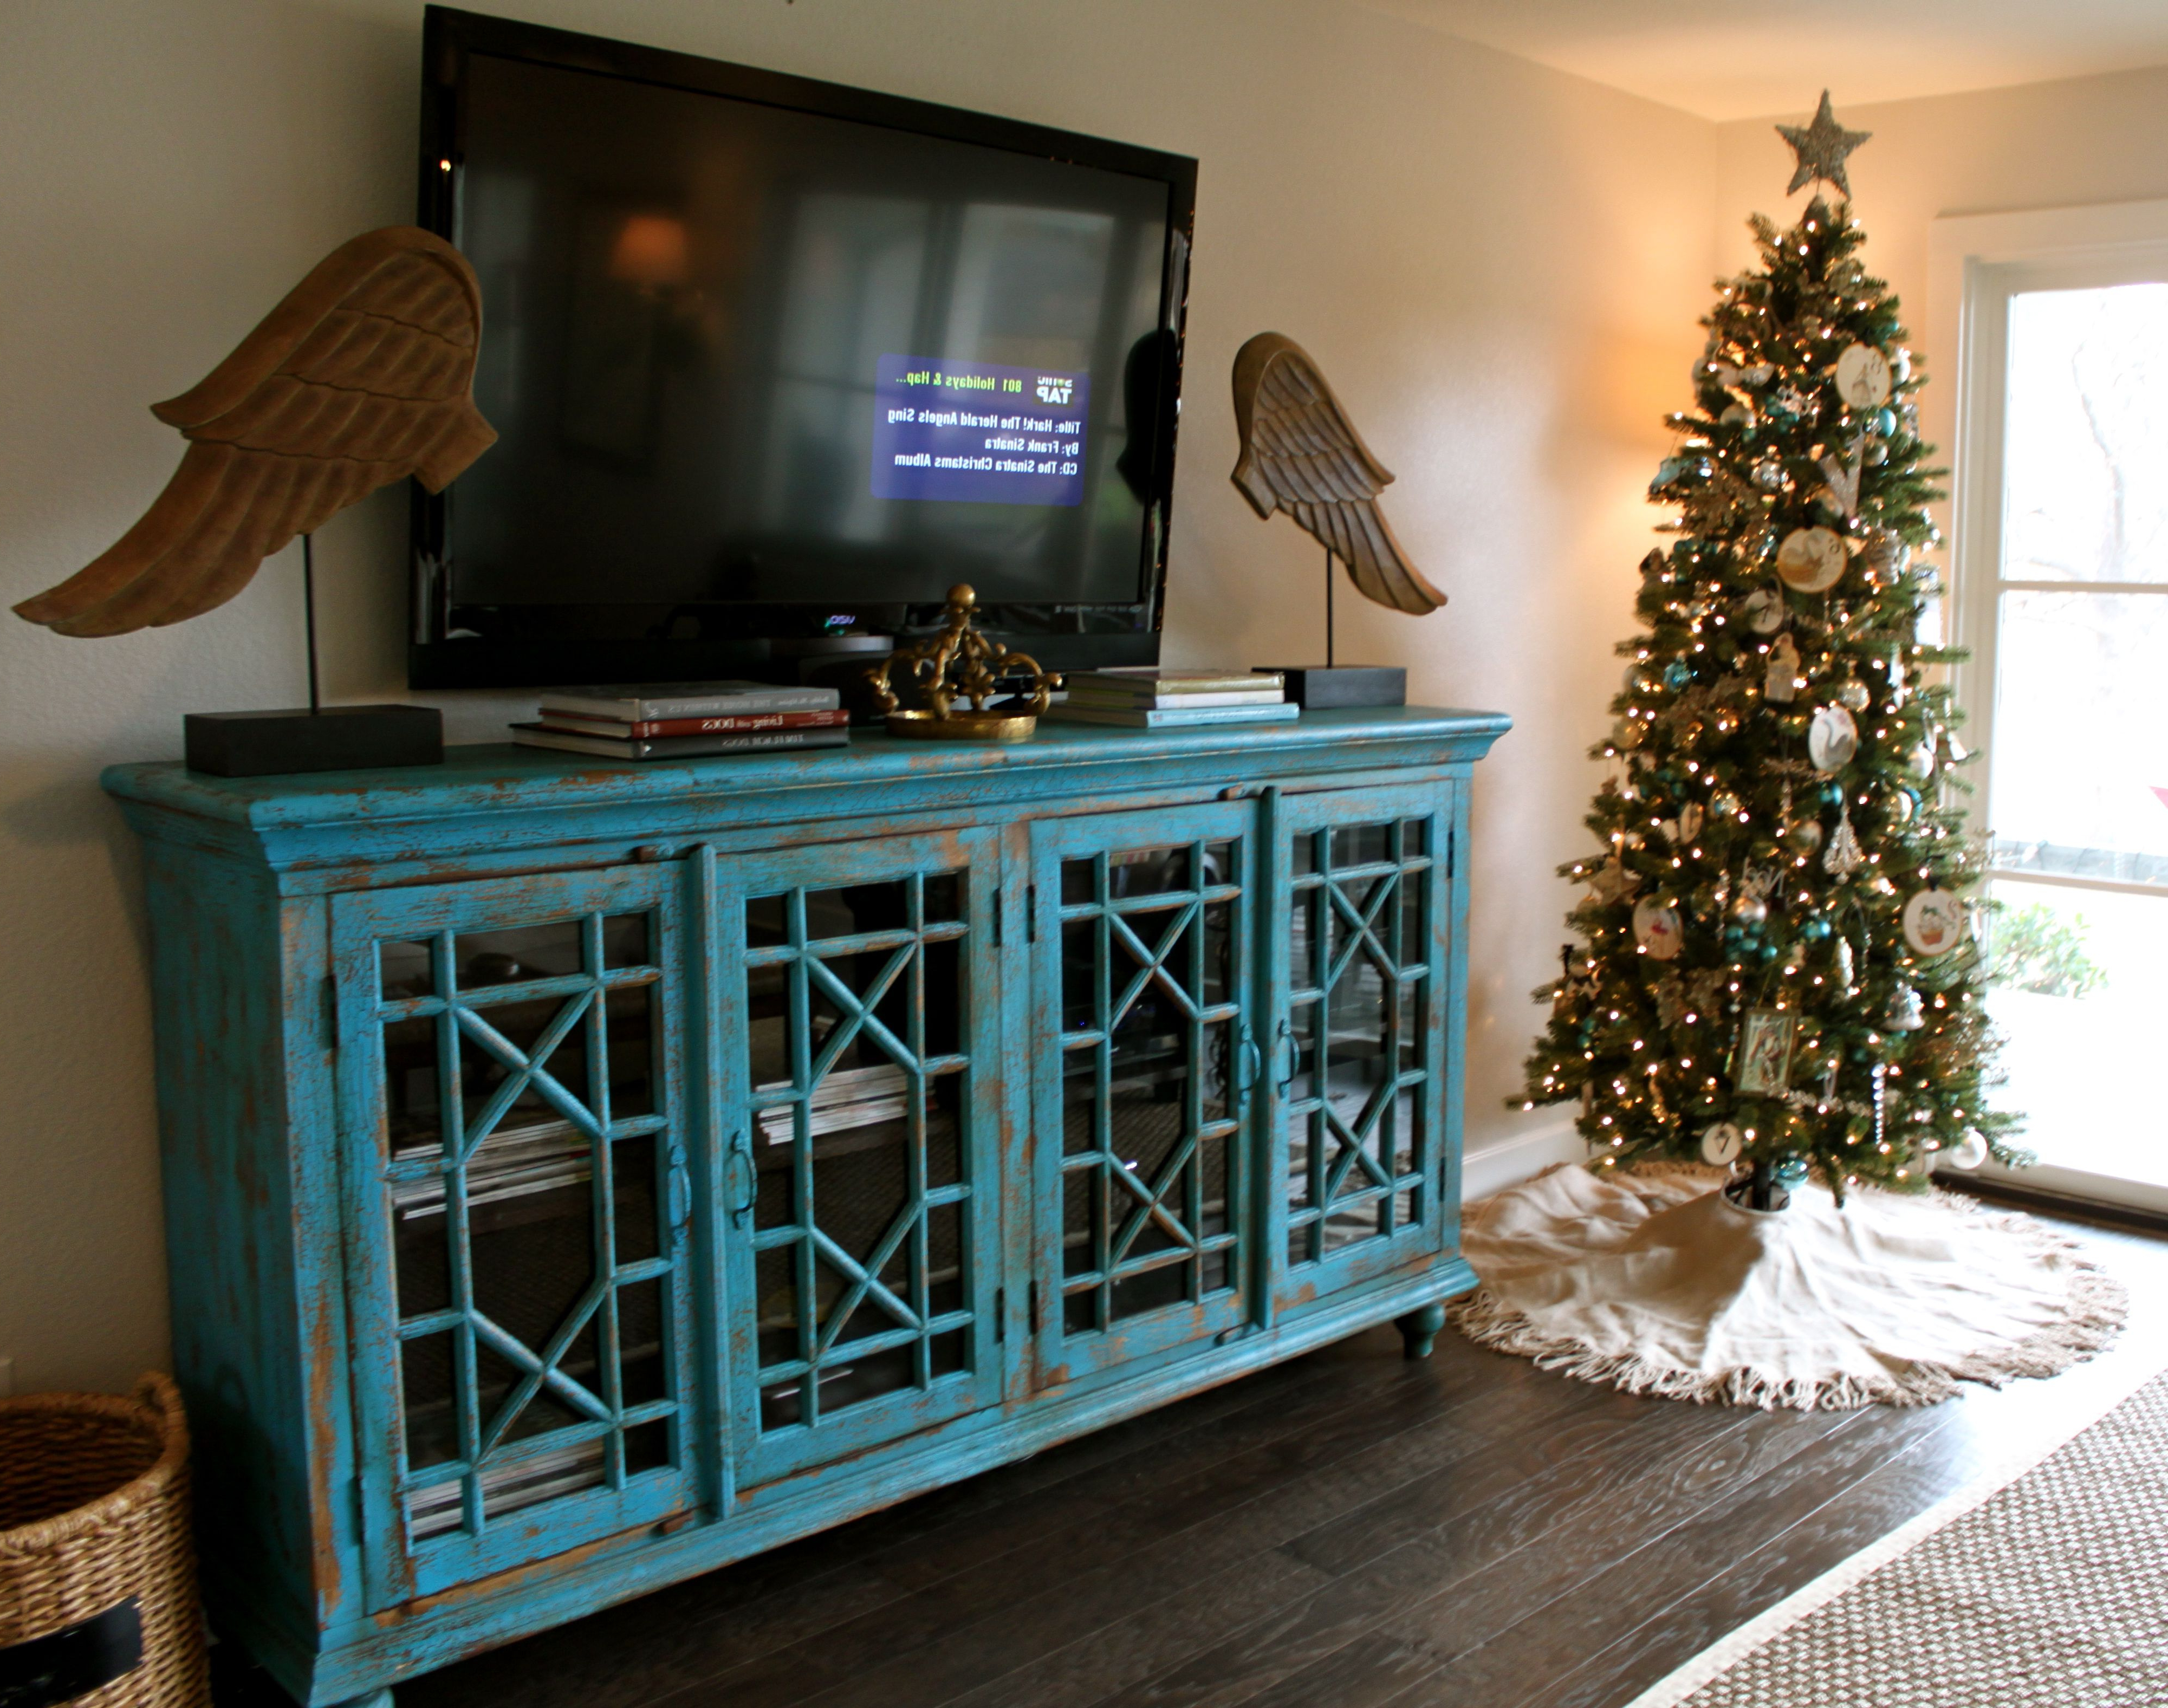 Pinleah Taylor On Decor | Diy Tv Stand, Room, Tv Cabinets Within Annabelle Blue 70 Inch Tv Stands (Gallery 8 of 20)